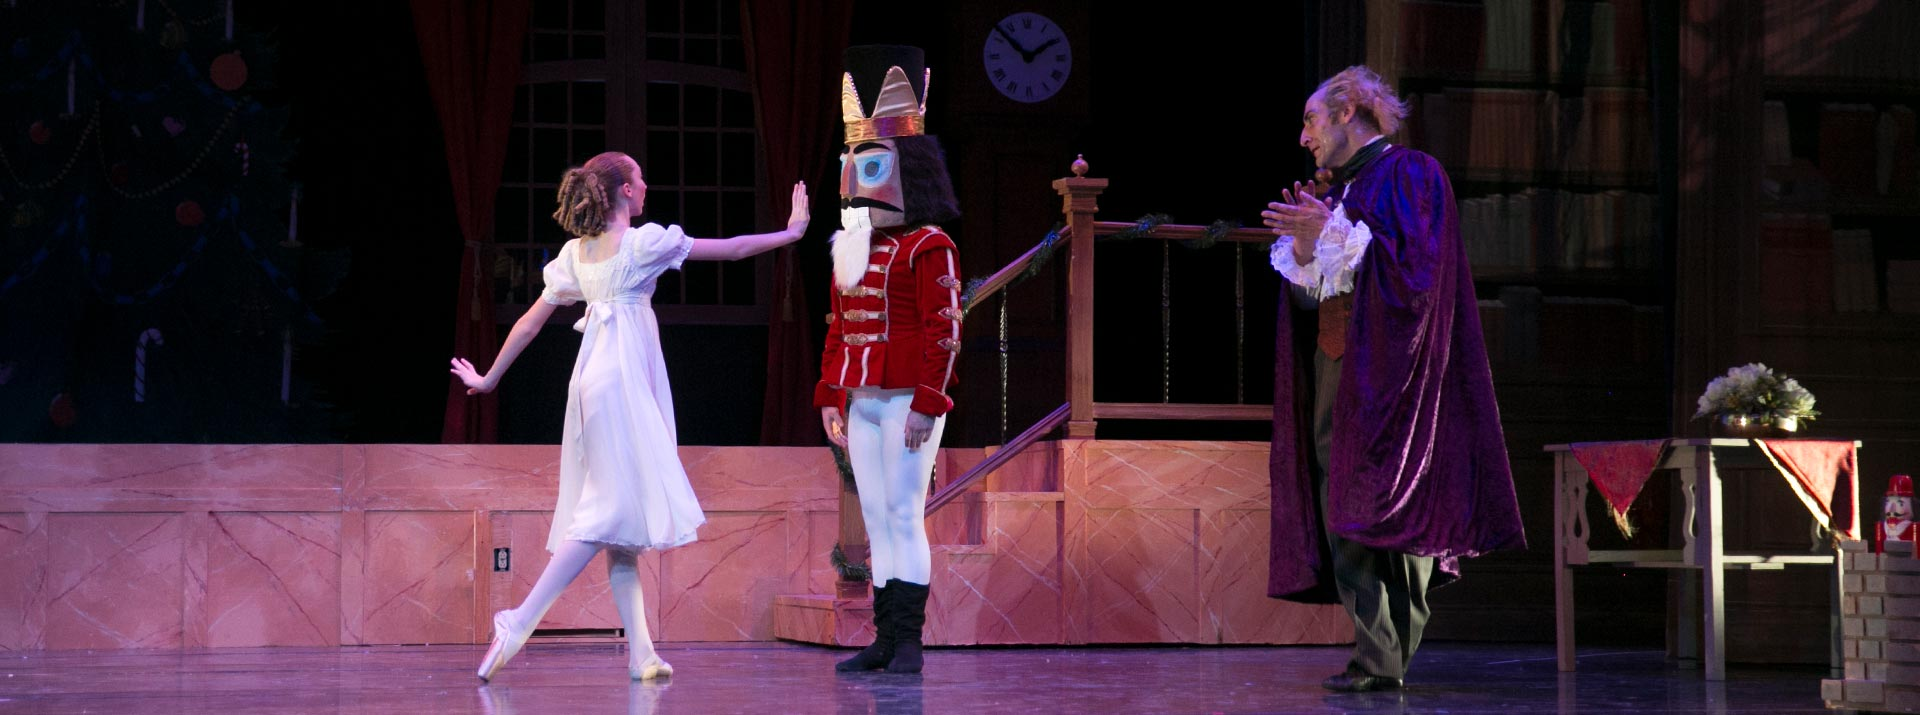 Clara, The Nutcracker and Uncle - About GCB